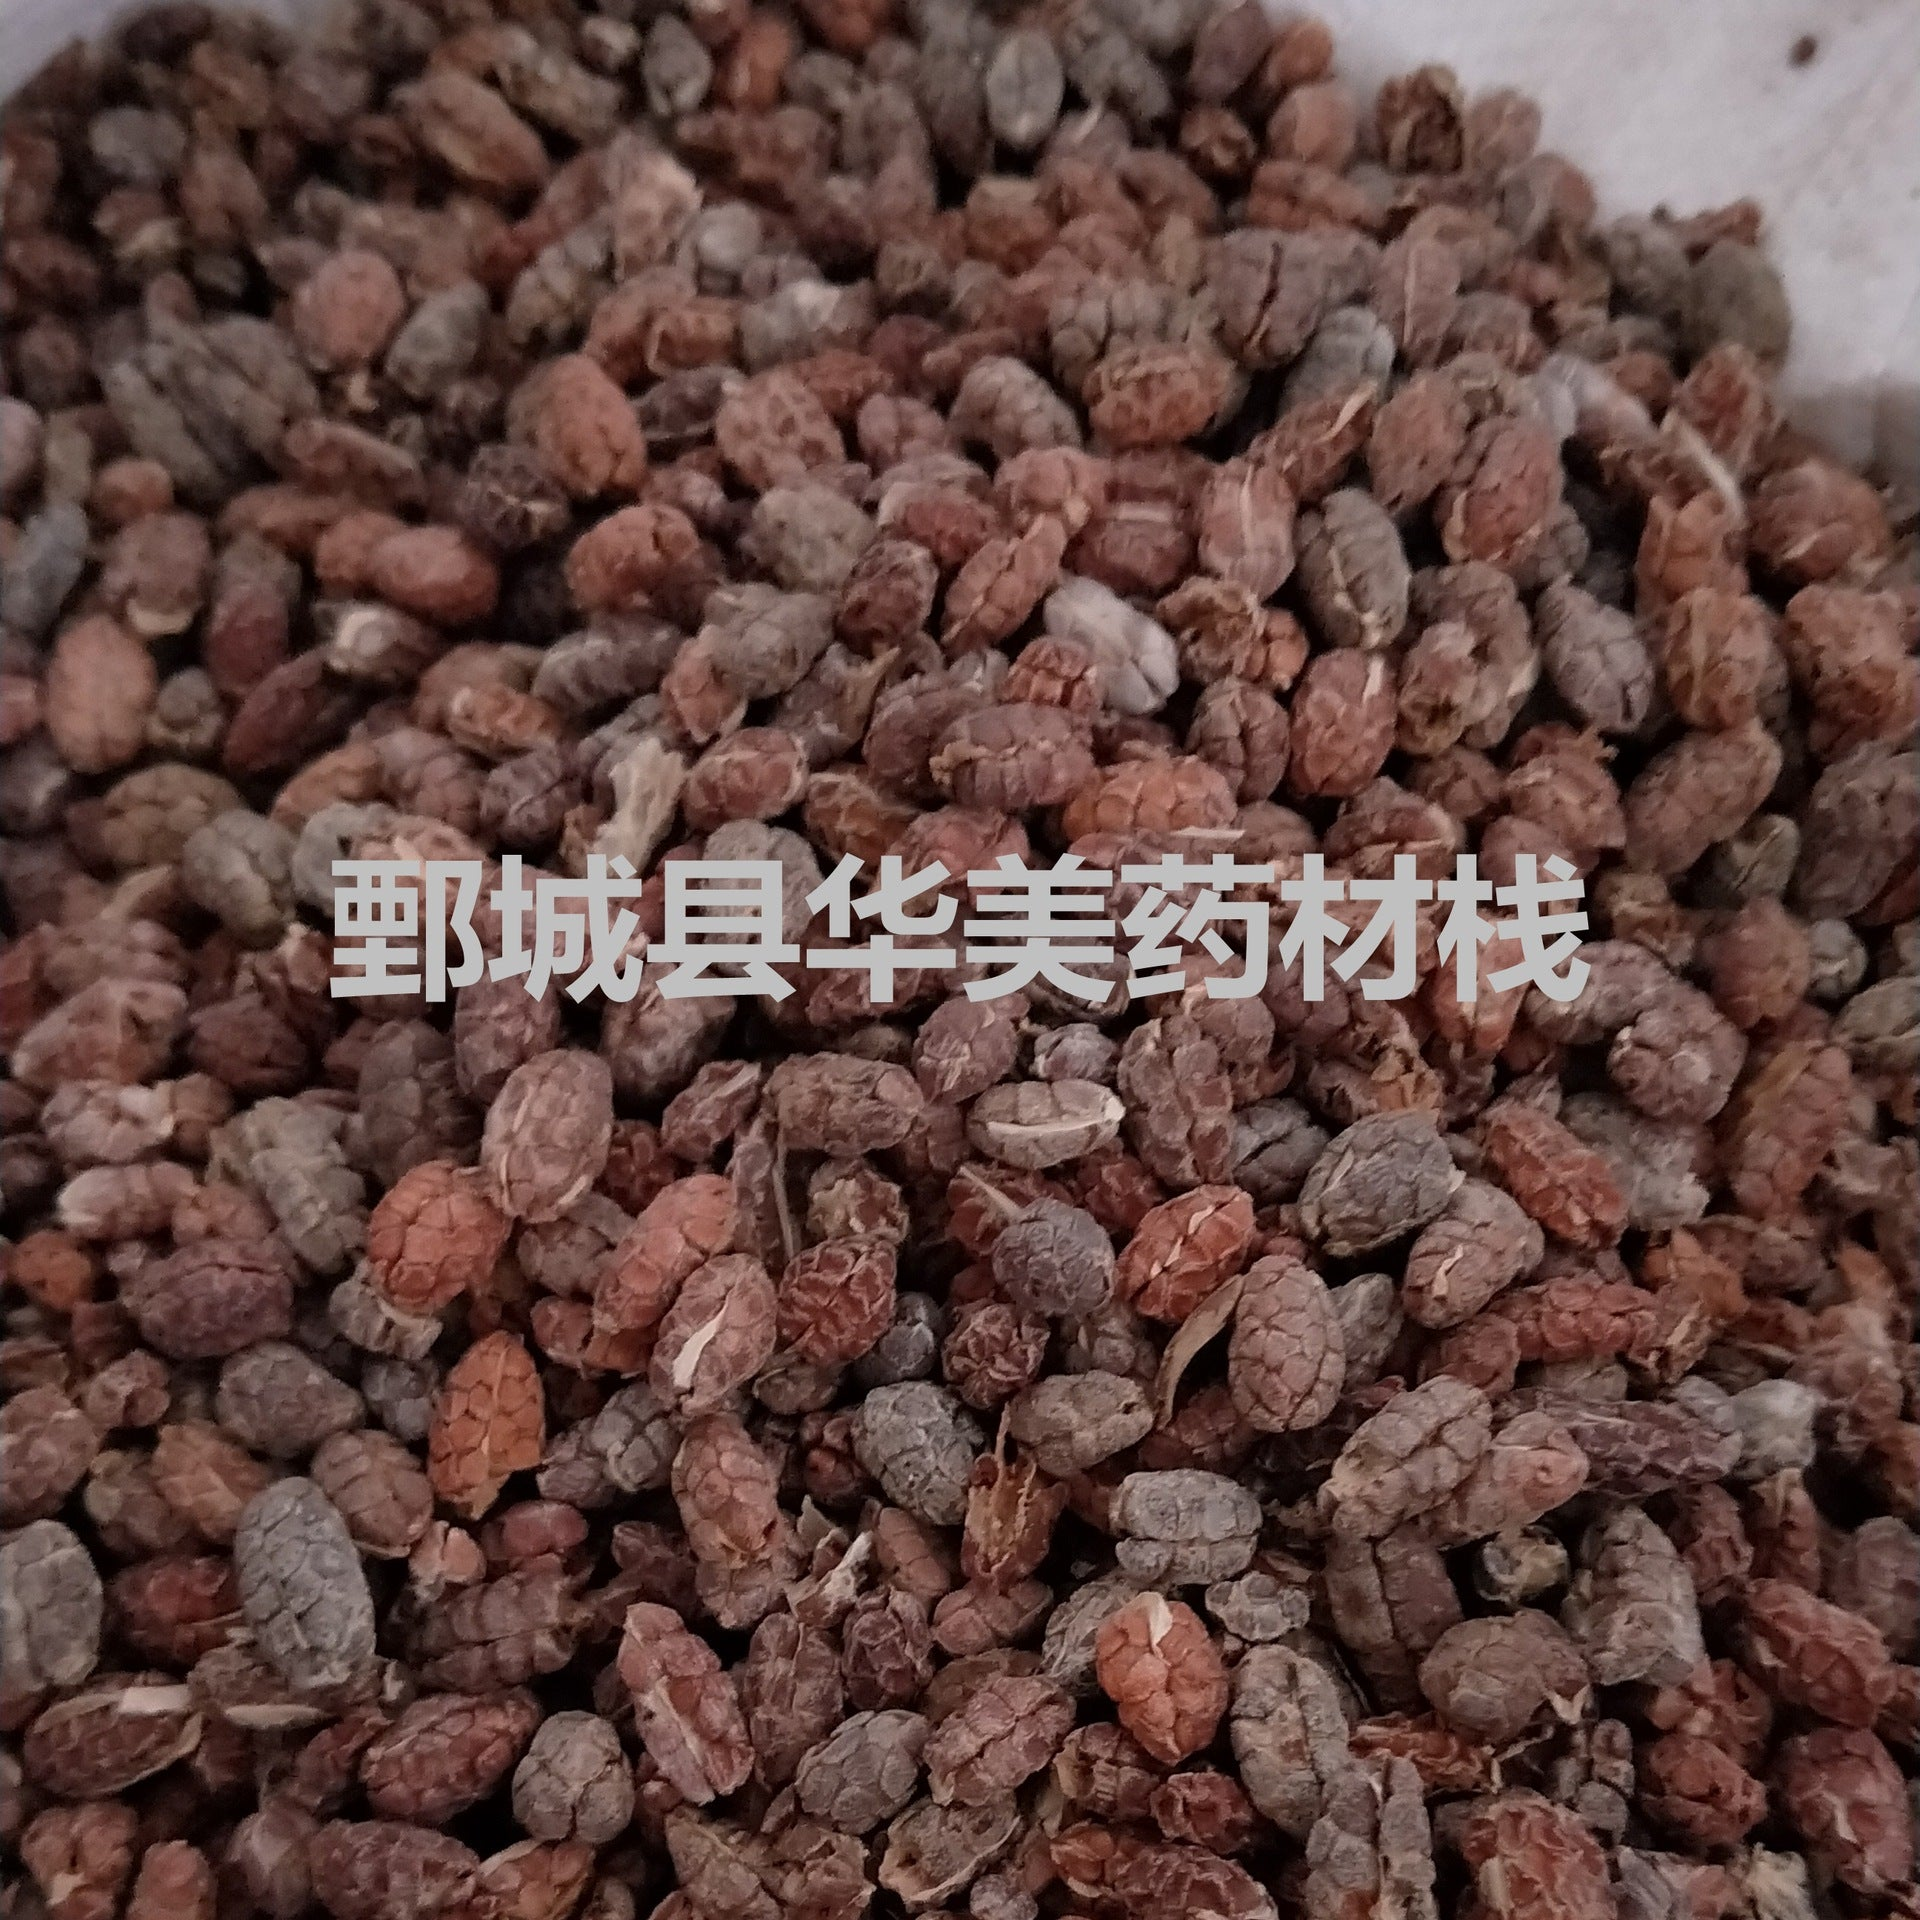 Ameno Rice @【Colorful Chinese medicine】Chinese herbal medicine wholesale supply【Amomum】【Net amomum】Amomum